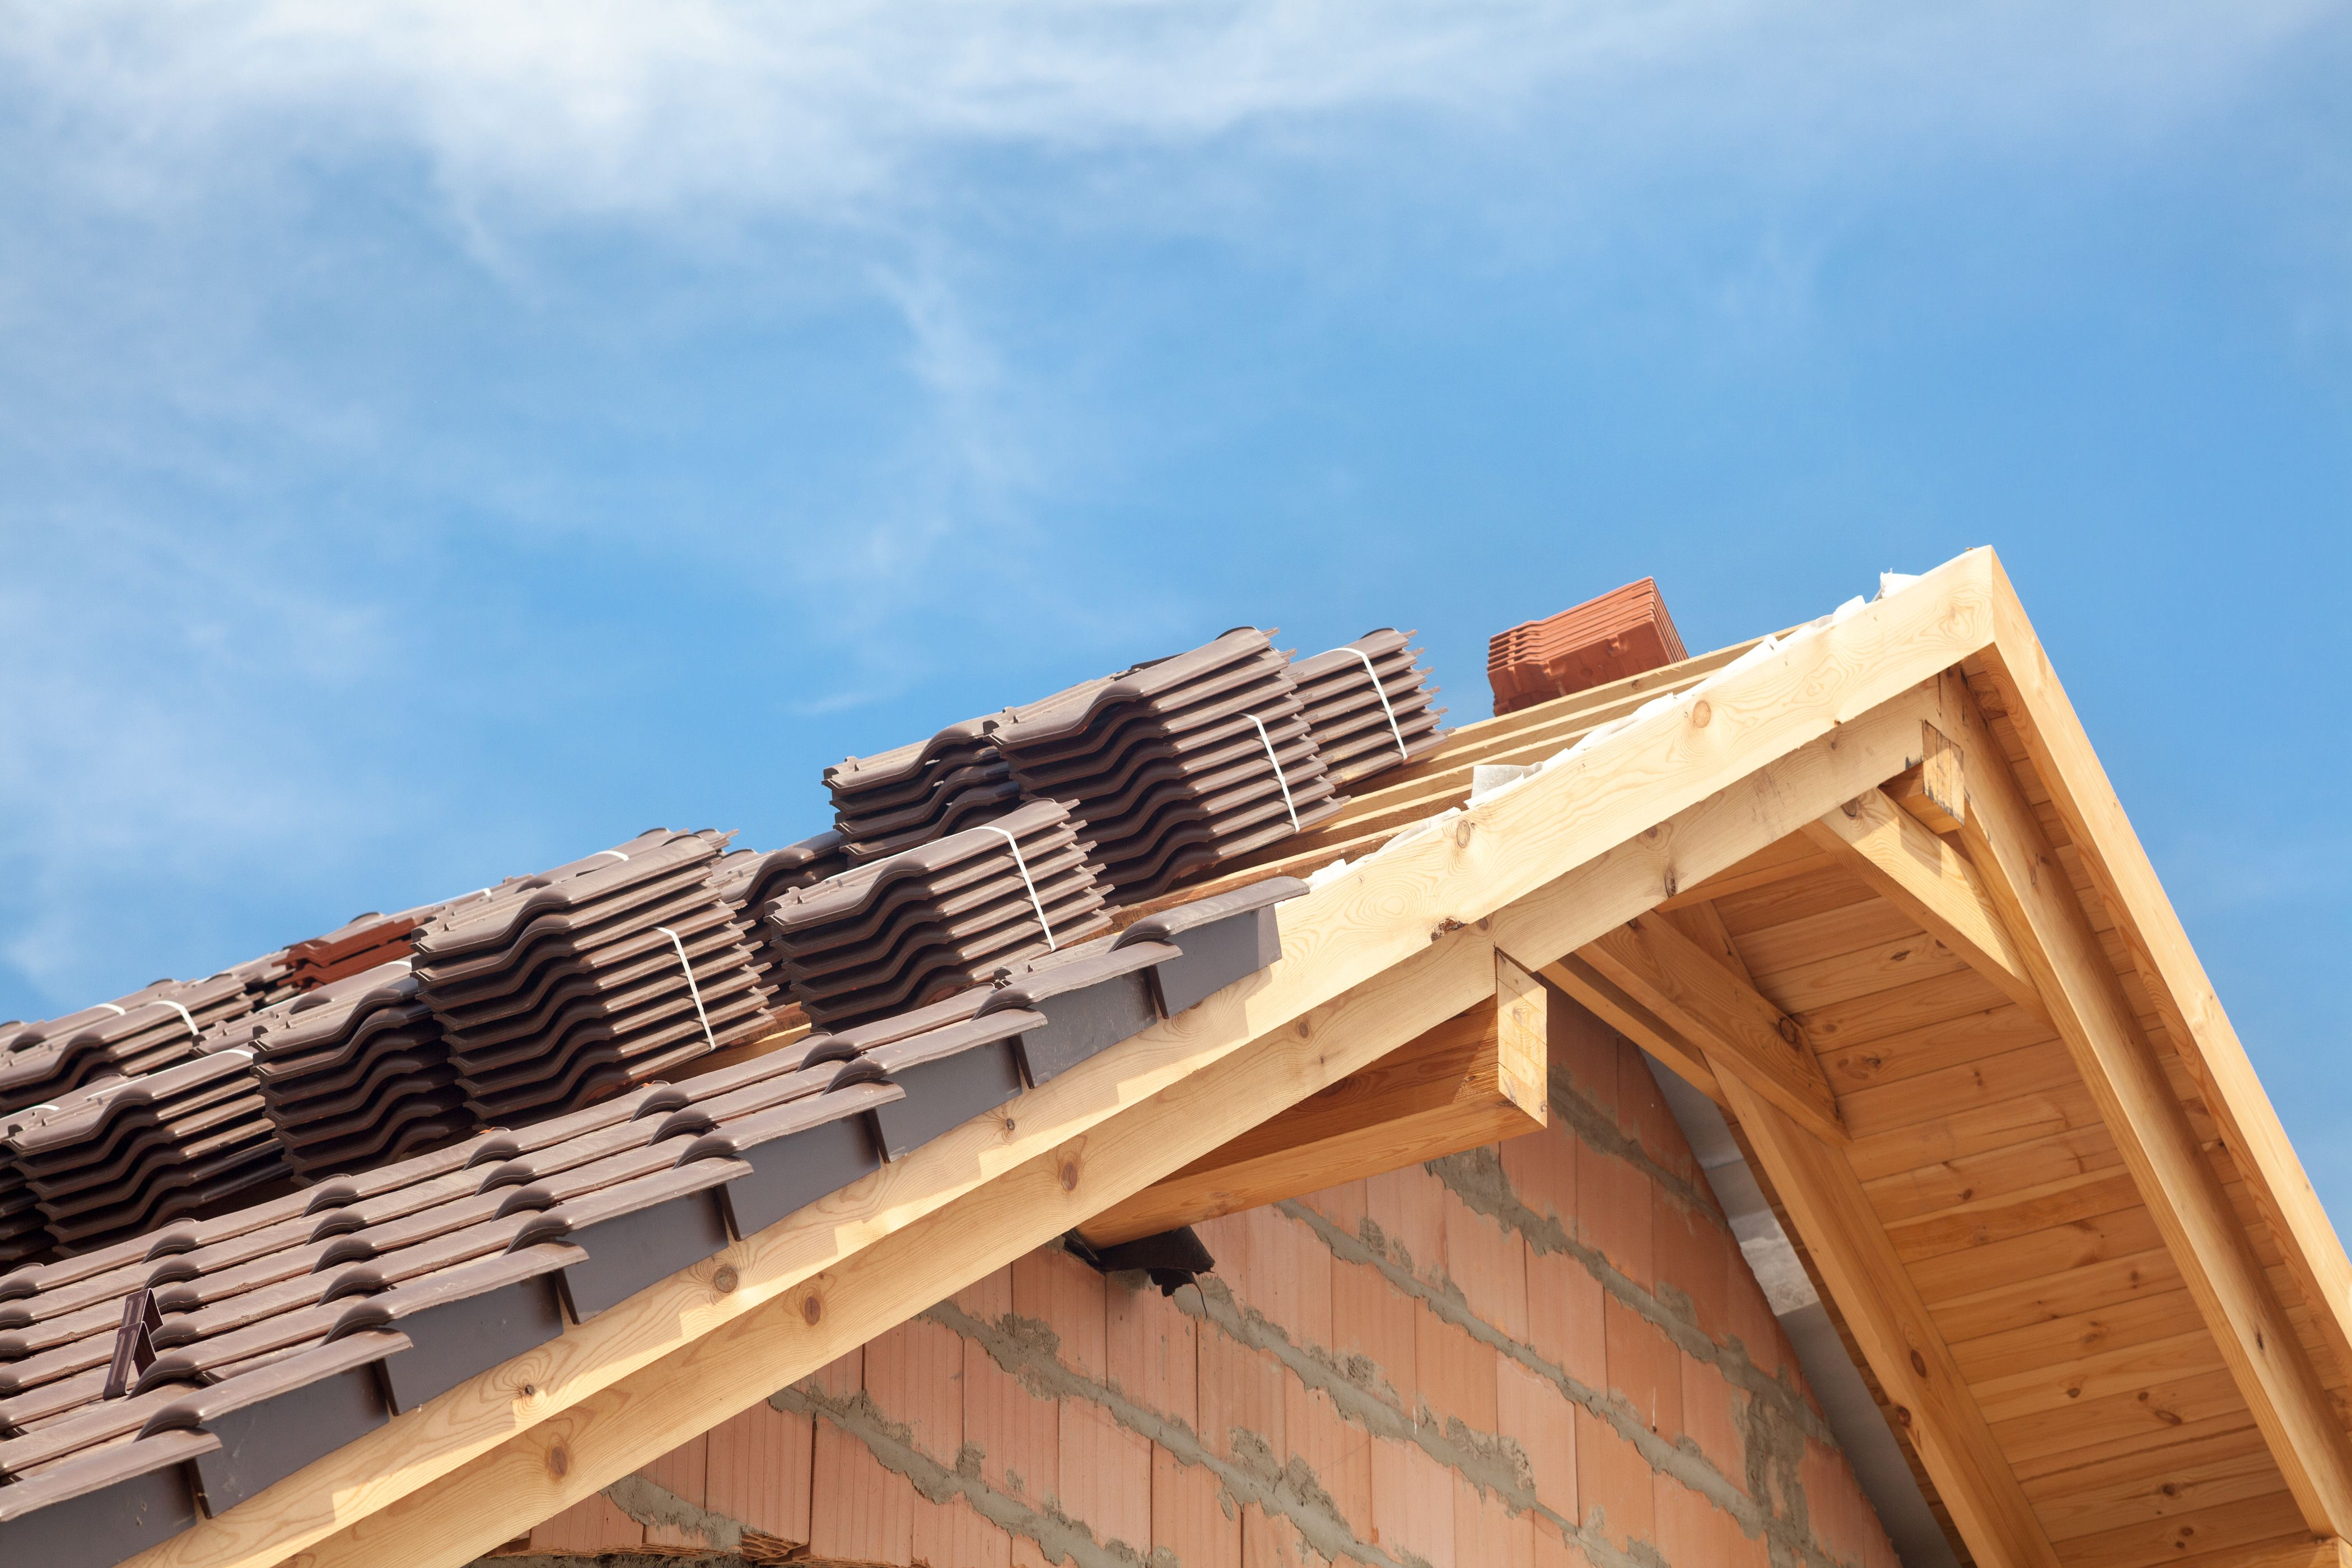 How To Increase The Pitch By Building A Roof Over An Existing Roof Hunker Building Roof Building Roof Trusses